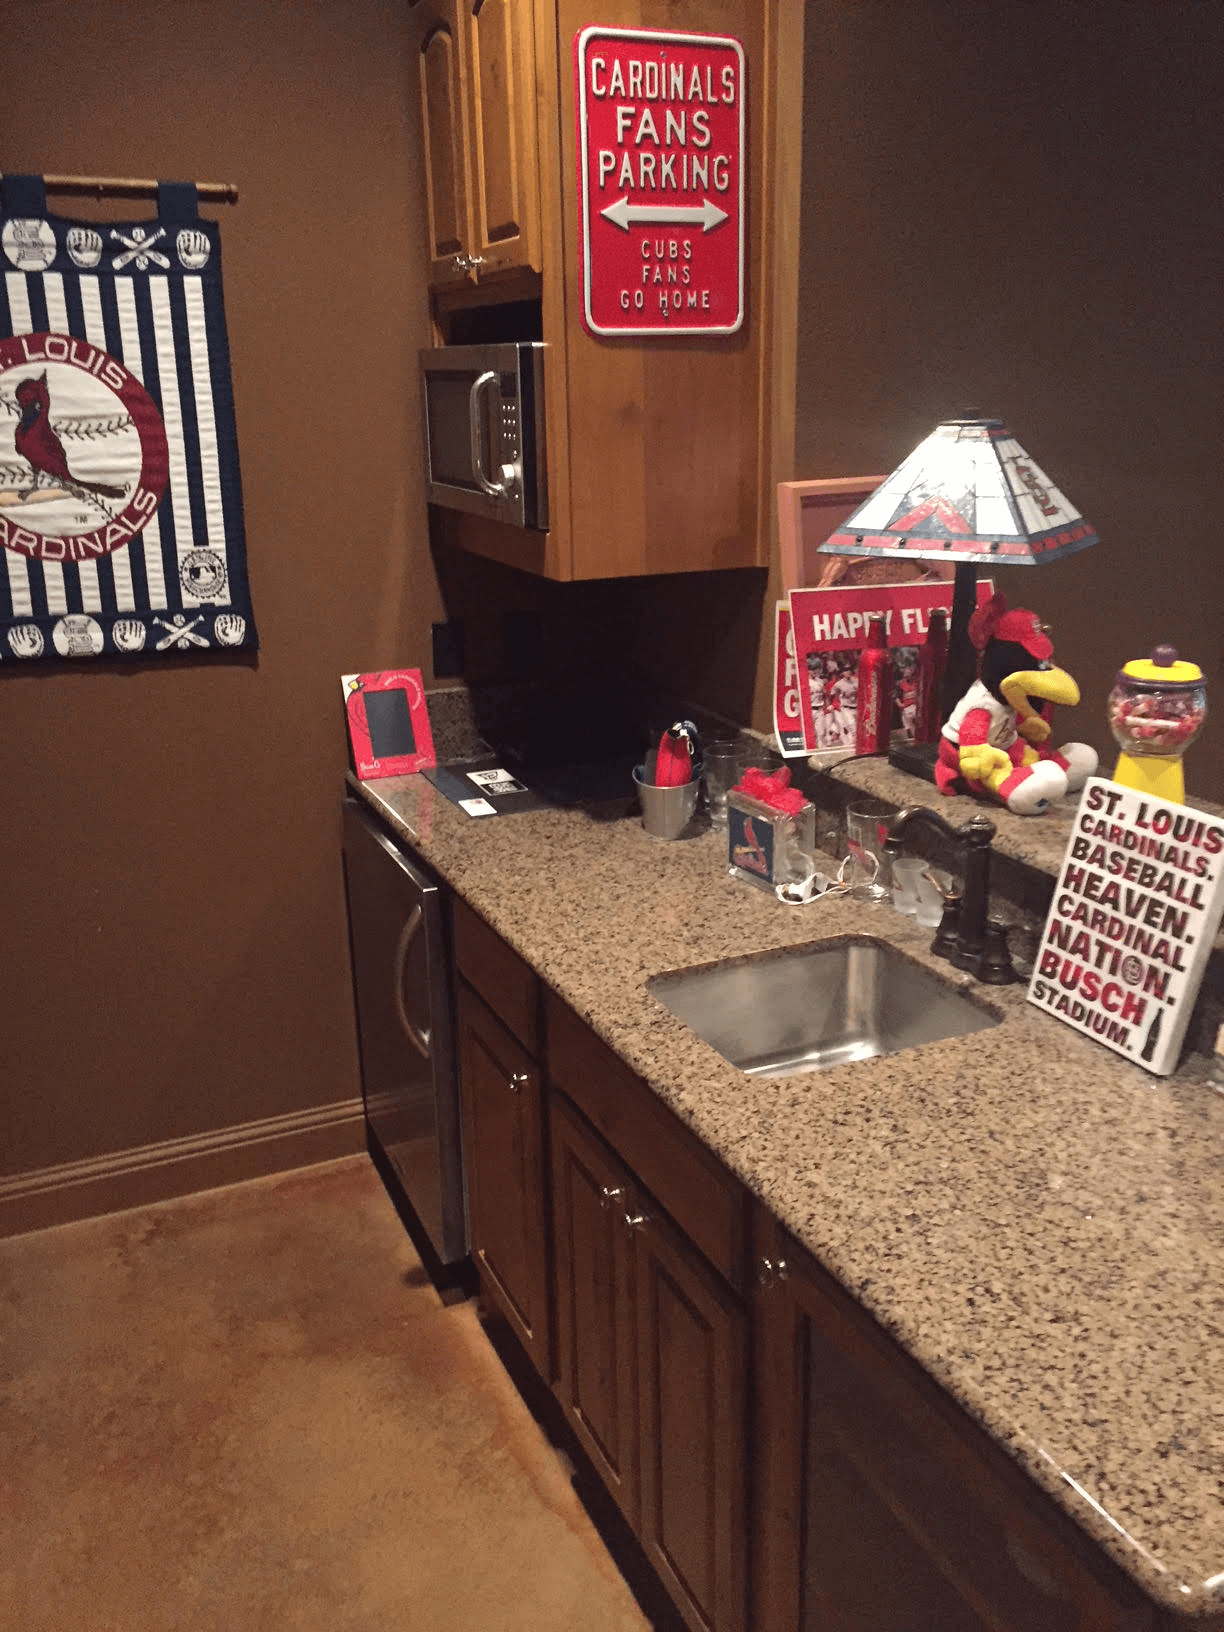 Sink area of baseball man cave